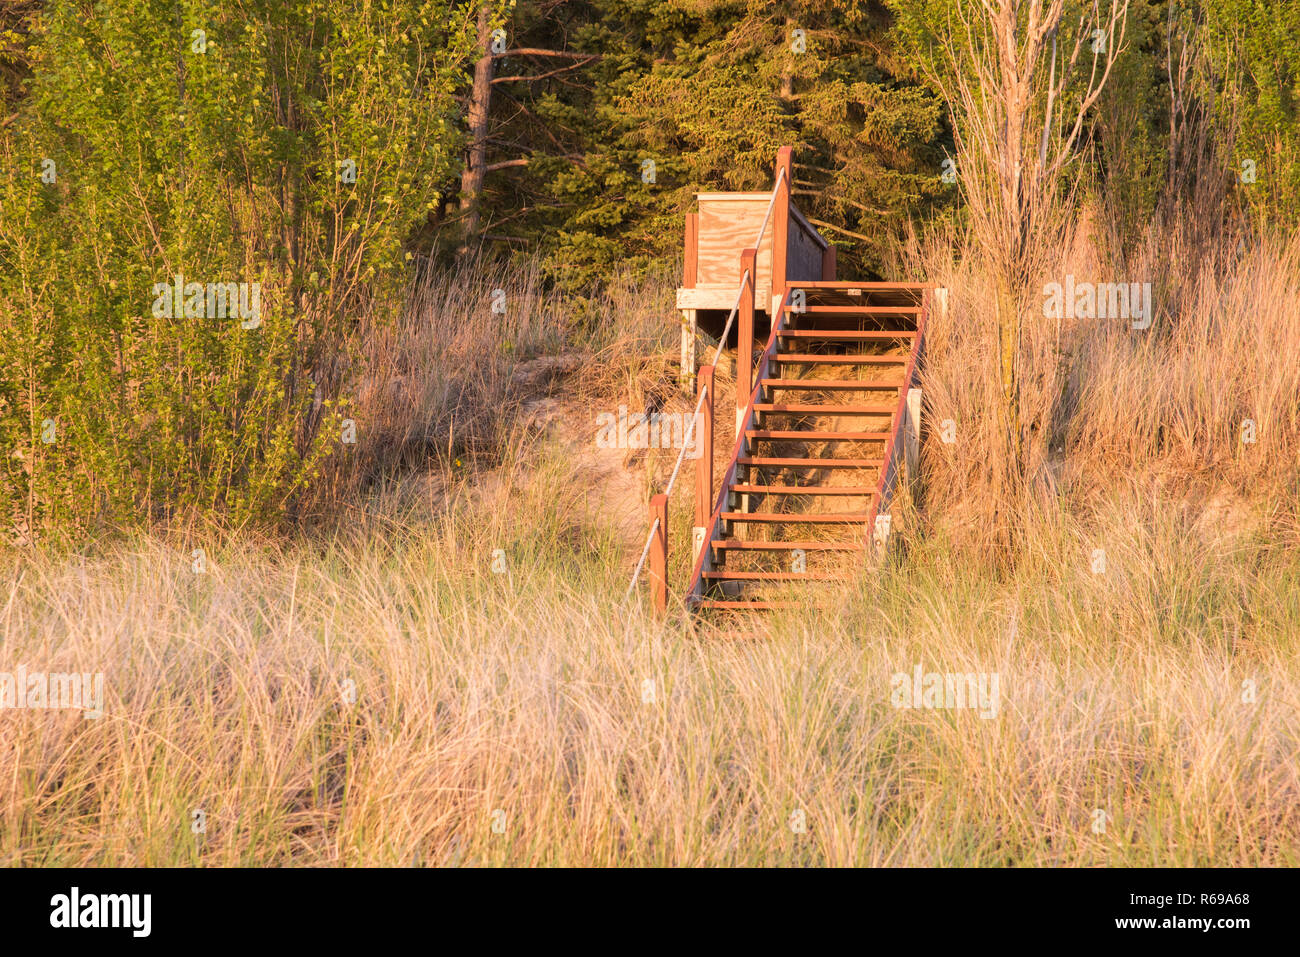 Stunning glow at dusk of the dune grasses and native trees with hillside stairs on the shoreline in Bridgman, Michigan. - Stock Image